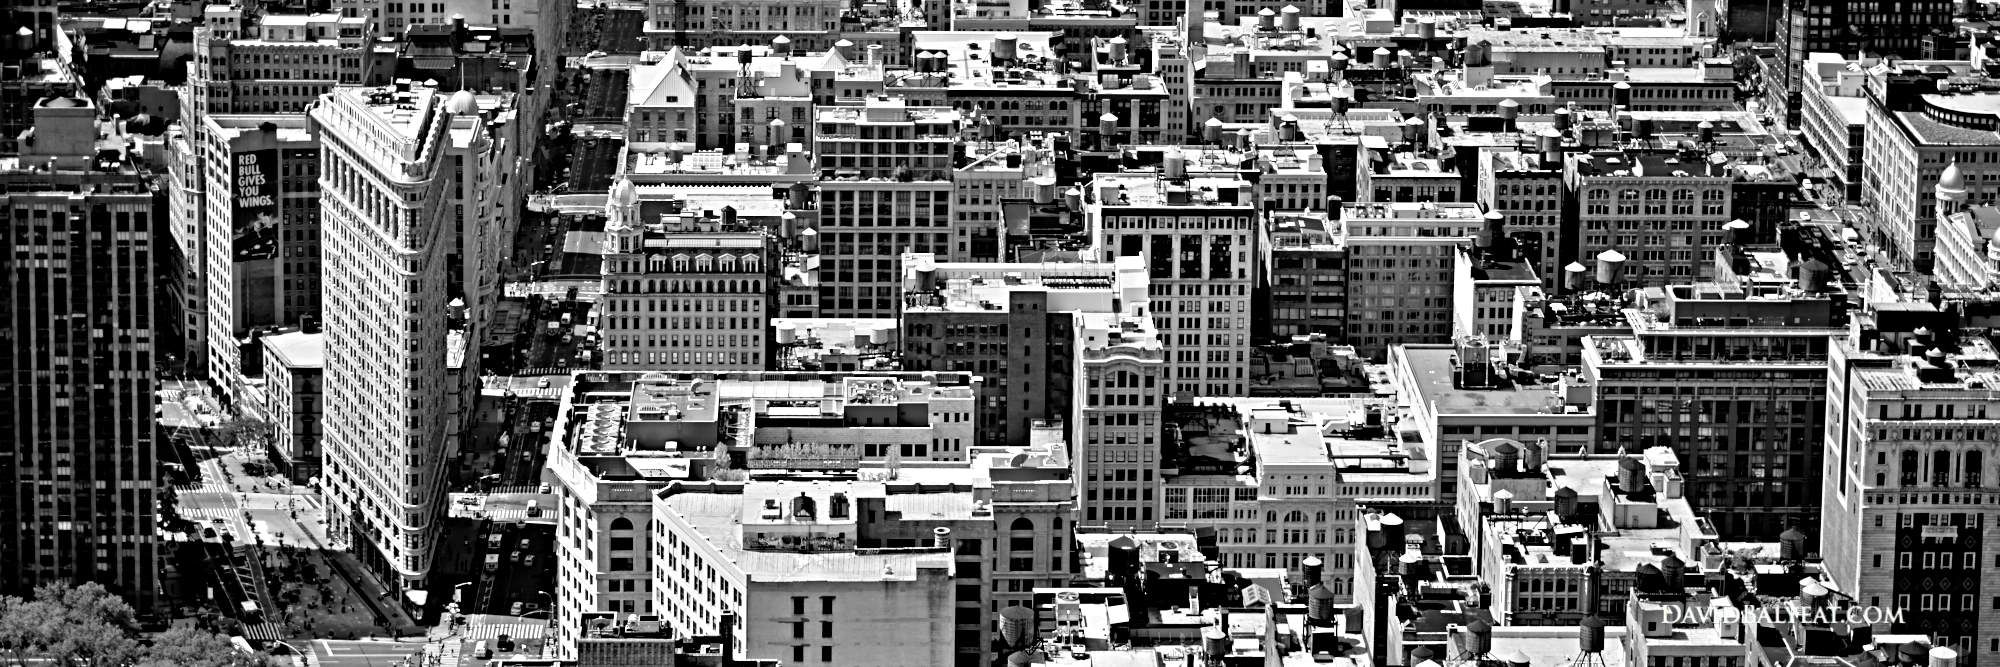 New York City Flatiron building in Manhattan, Panoramic Black and White photography in HD high definition